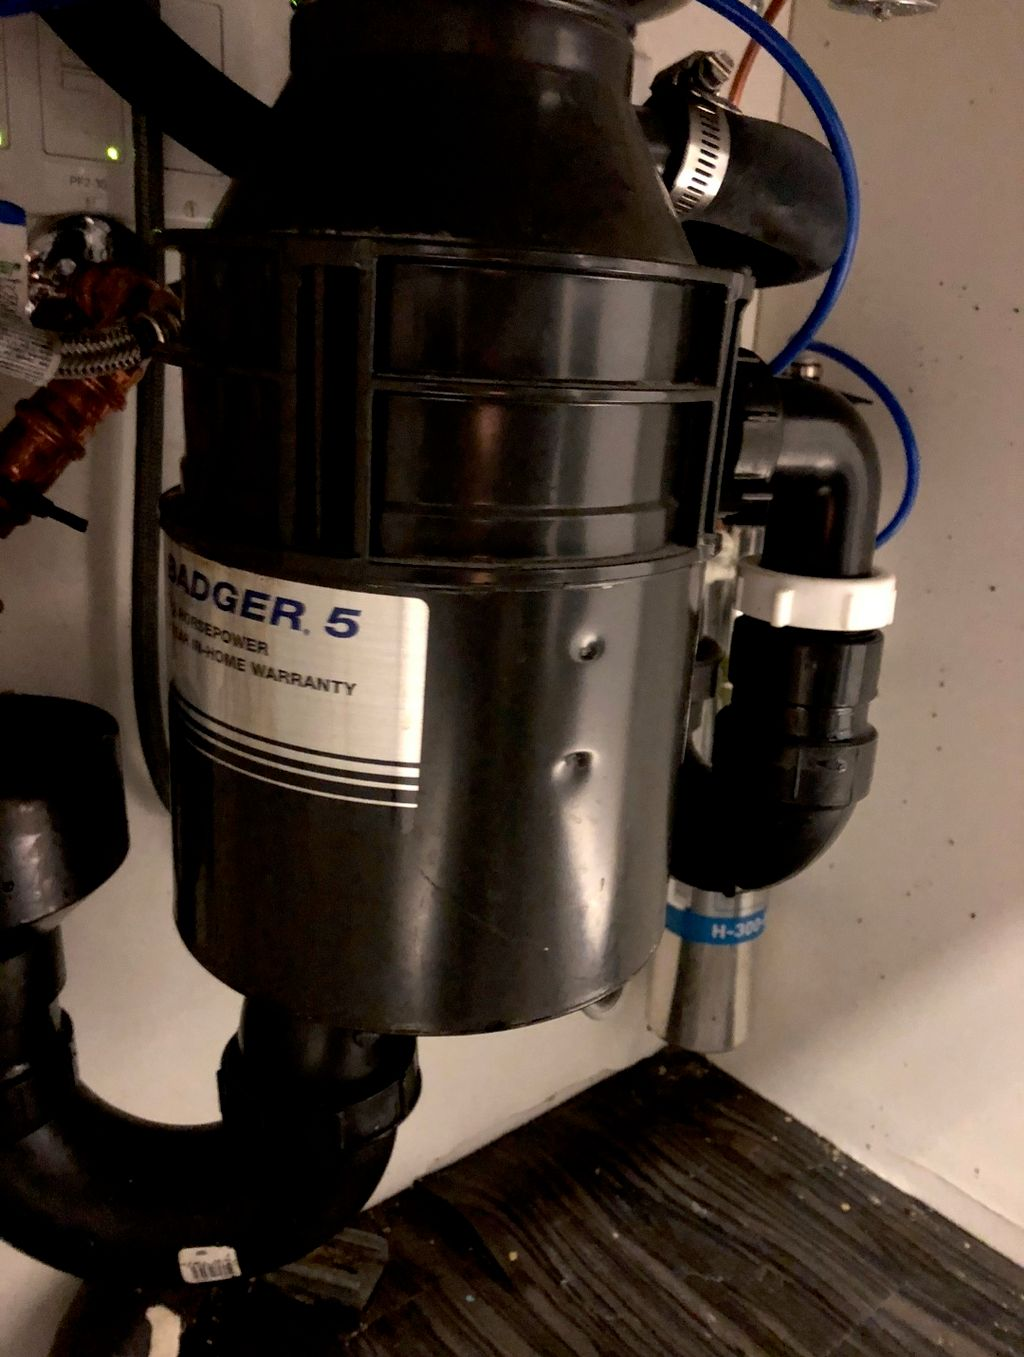 Replace garbage disposal And piping from sink